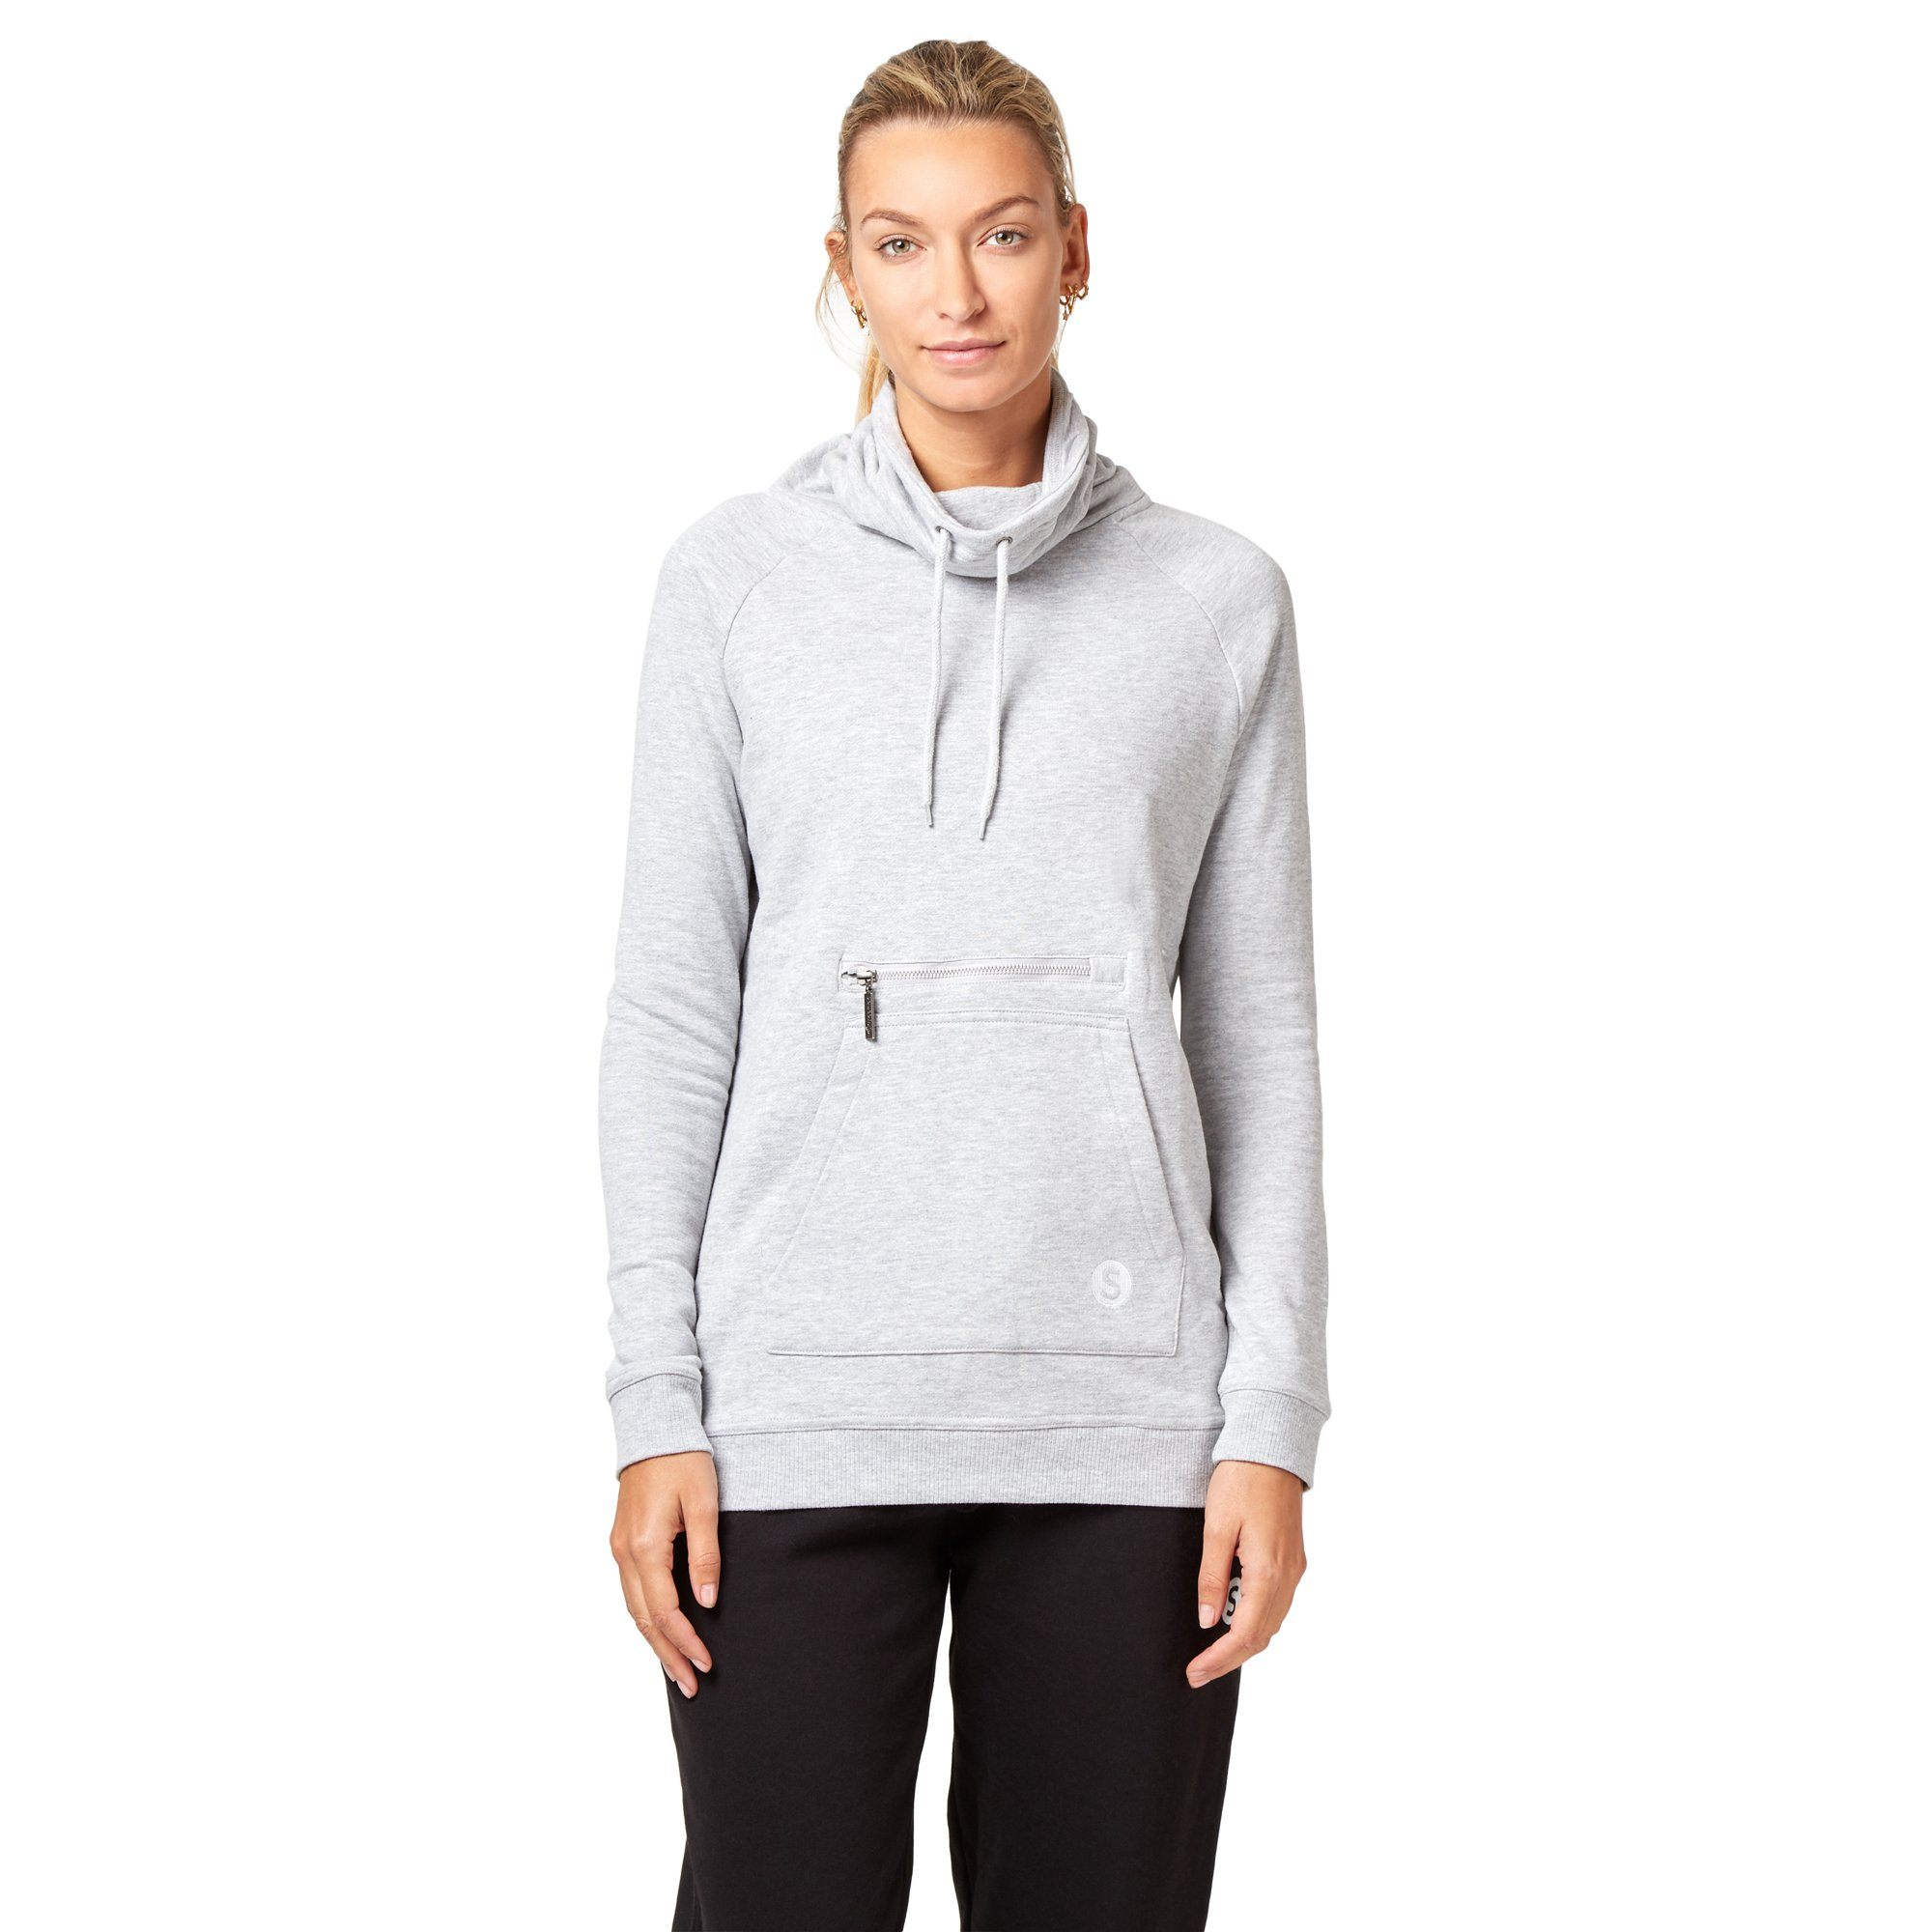 Saucony Basic Punnel - Grey Apparel Saucony